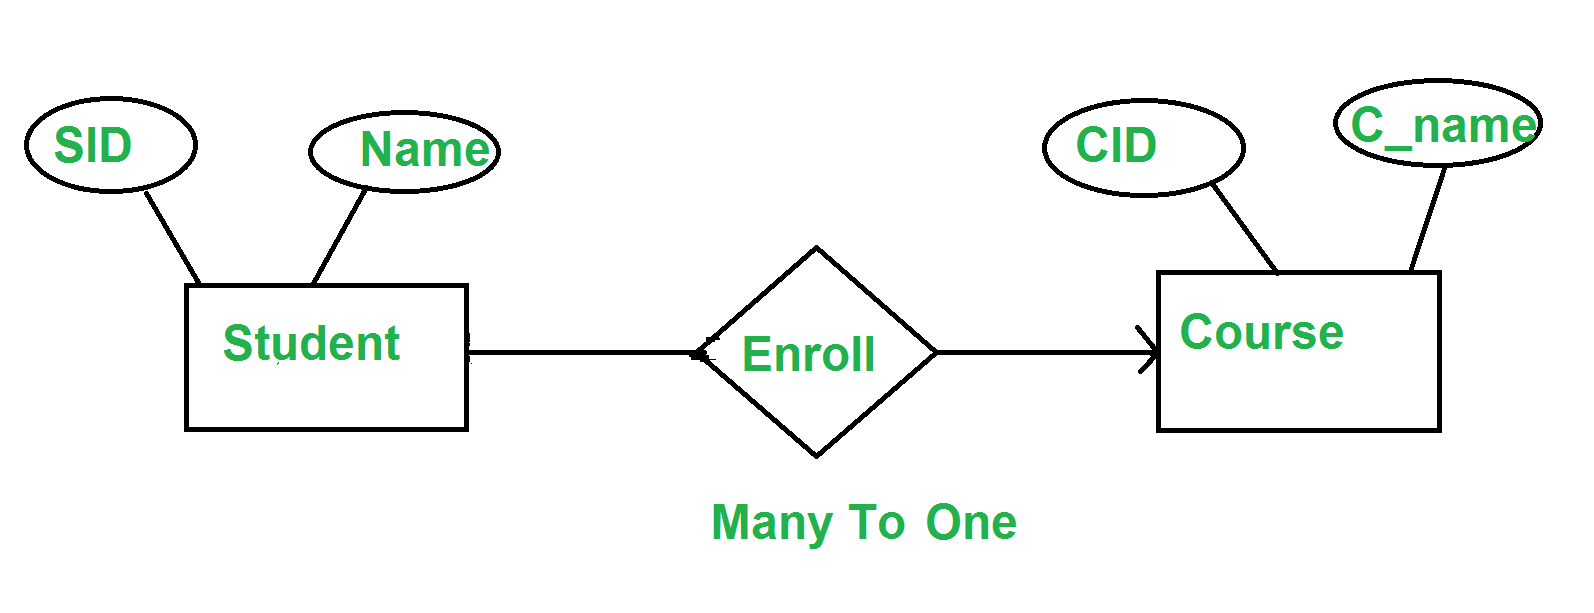 Minimization Of Er Diagram - Geeksforgeeks within Entity Relationship Diagram Cardinality Examples